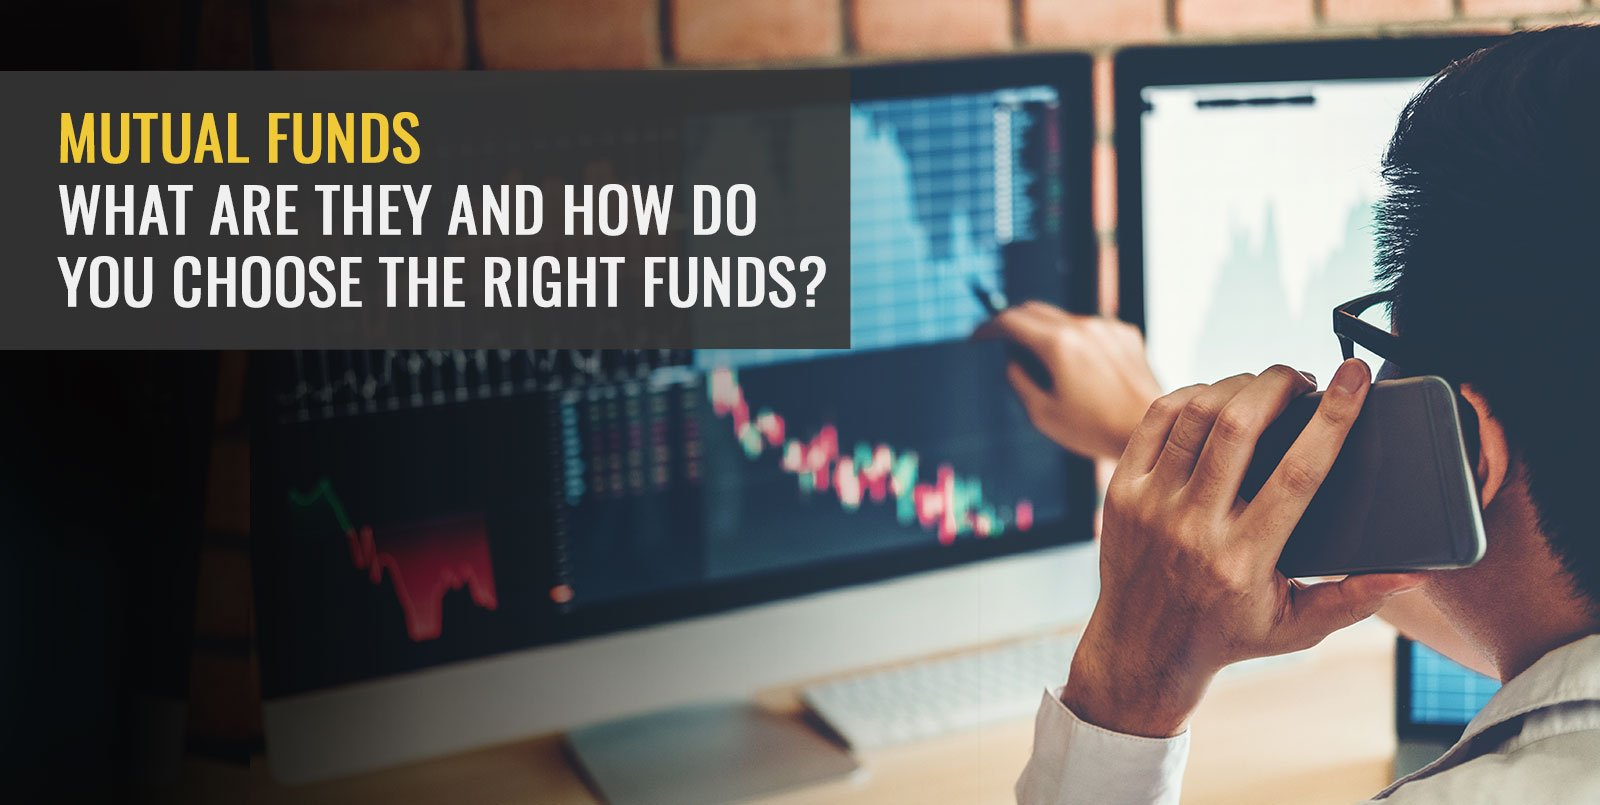 Mutual funds: What are they and how do you choose the right funds?